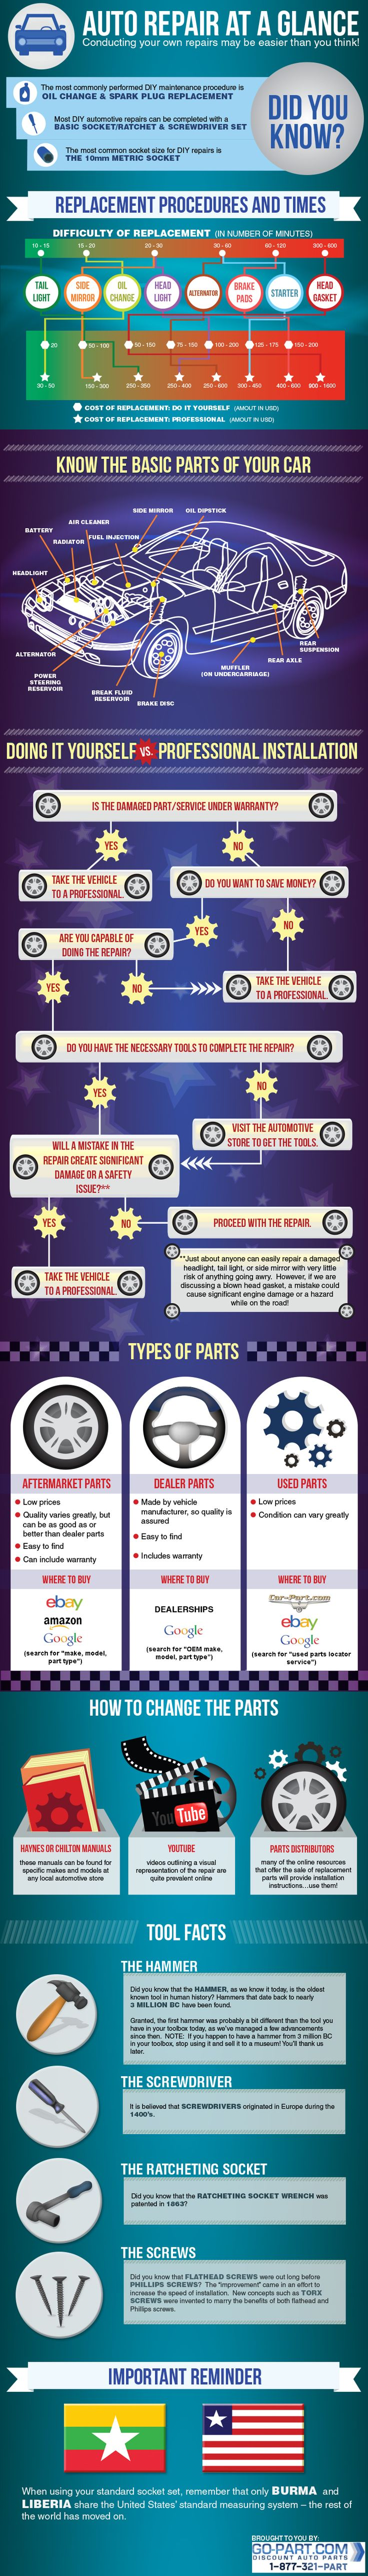 7 best truck maintenance images on pinterest car brake repair car auto repair at a glance infographic car repairdiy solutioingenieria Choice Image